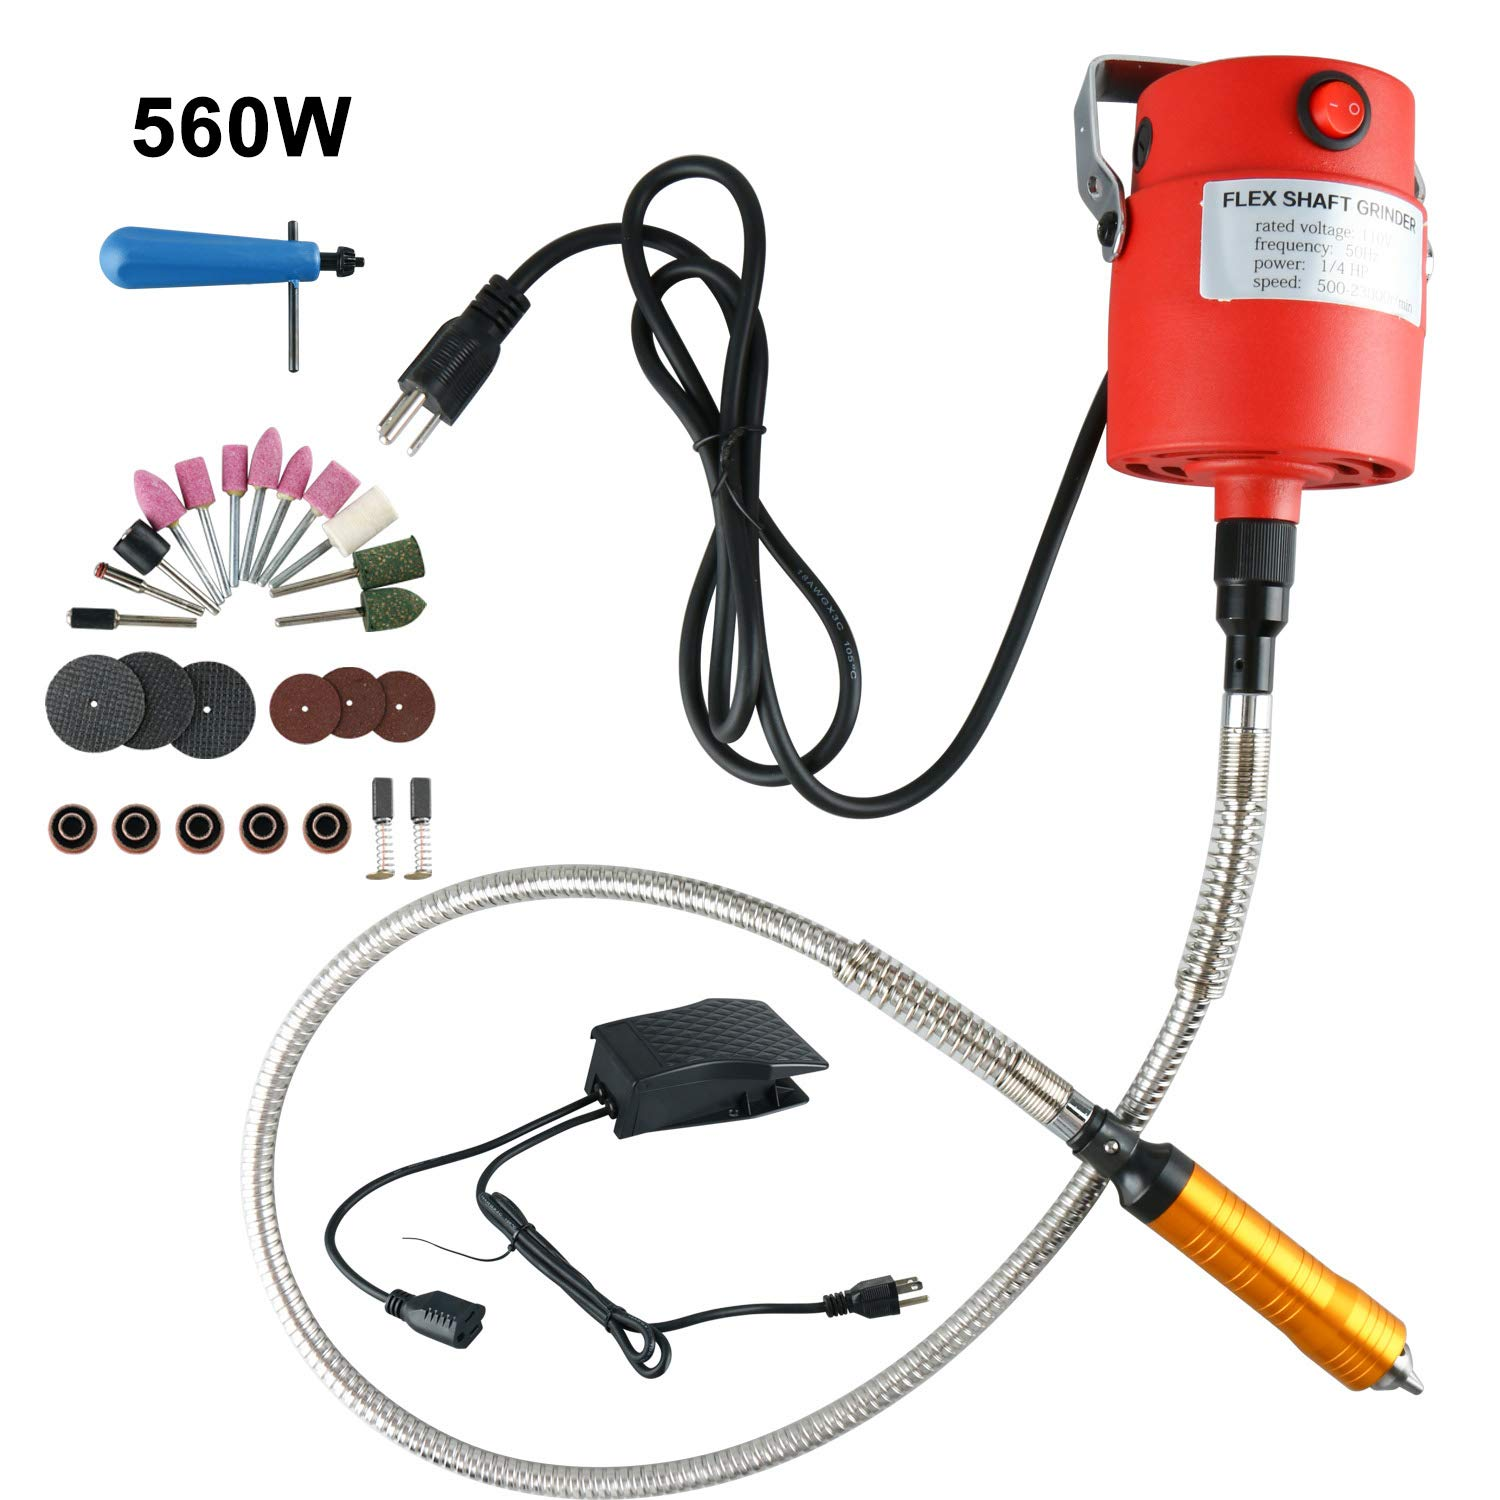 1/4''HP Rotary Tool Flexible Flex Shaft Hanging Grinder Carver Electric Carving Tools Kit, Seperate Motor Switch Knob Control, Foot Pedal Control, 560W Power, Metal Flexible Shaft,23000 RPM (560W)